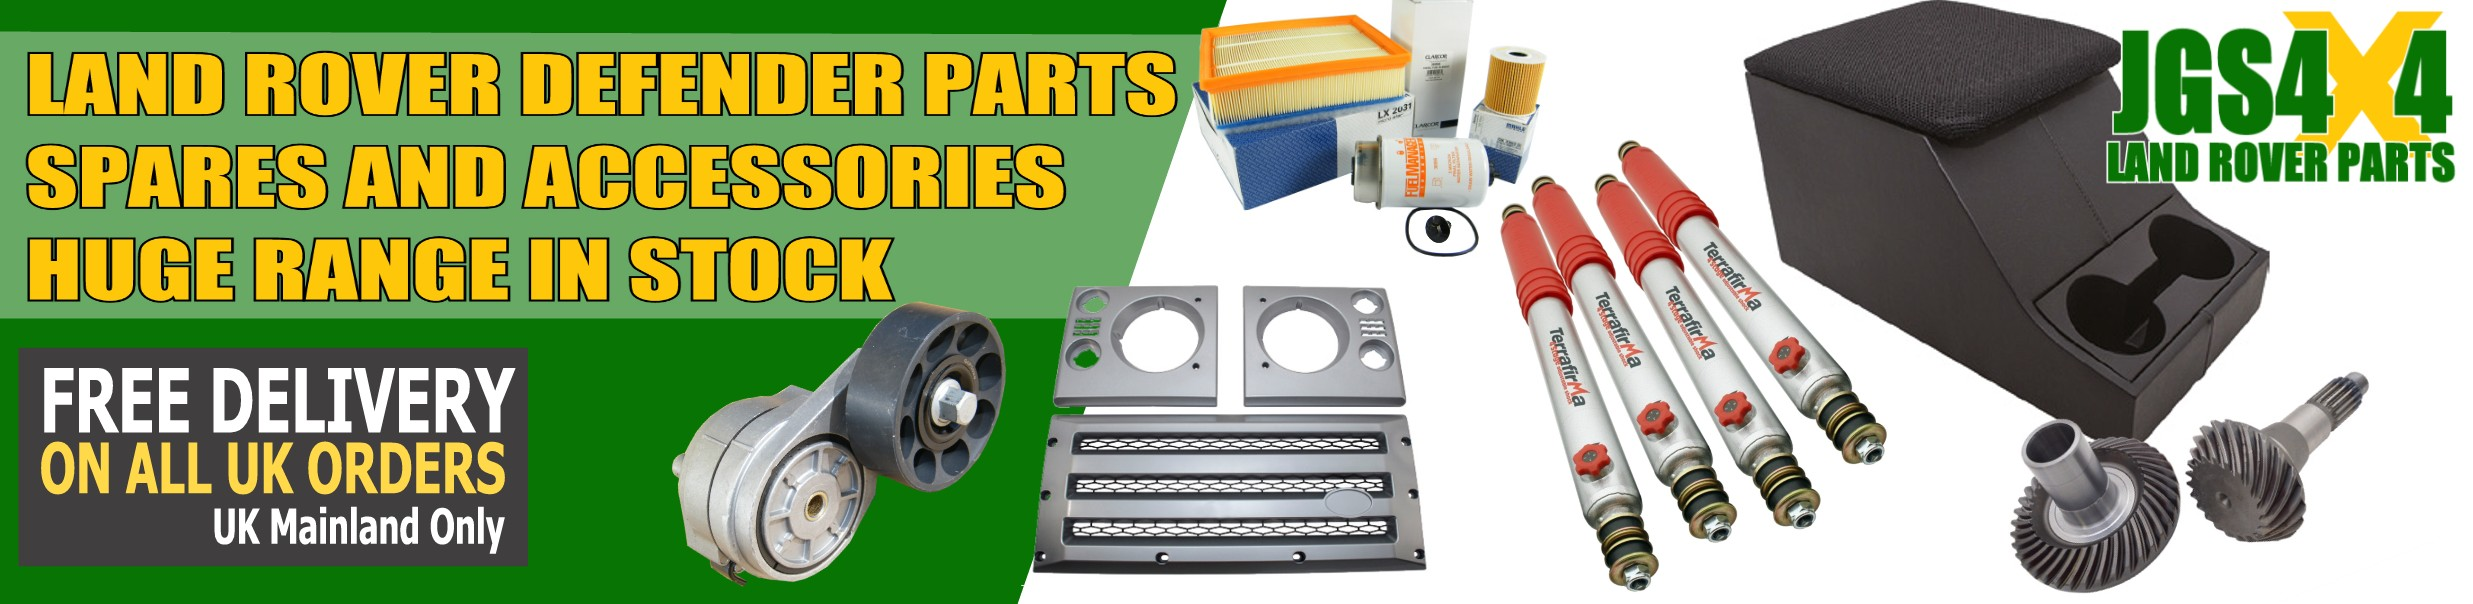 Land Rover Defender spare parts and accessories kept in stock.